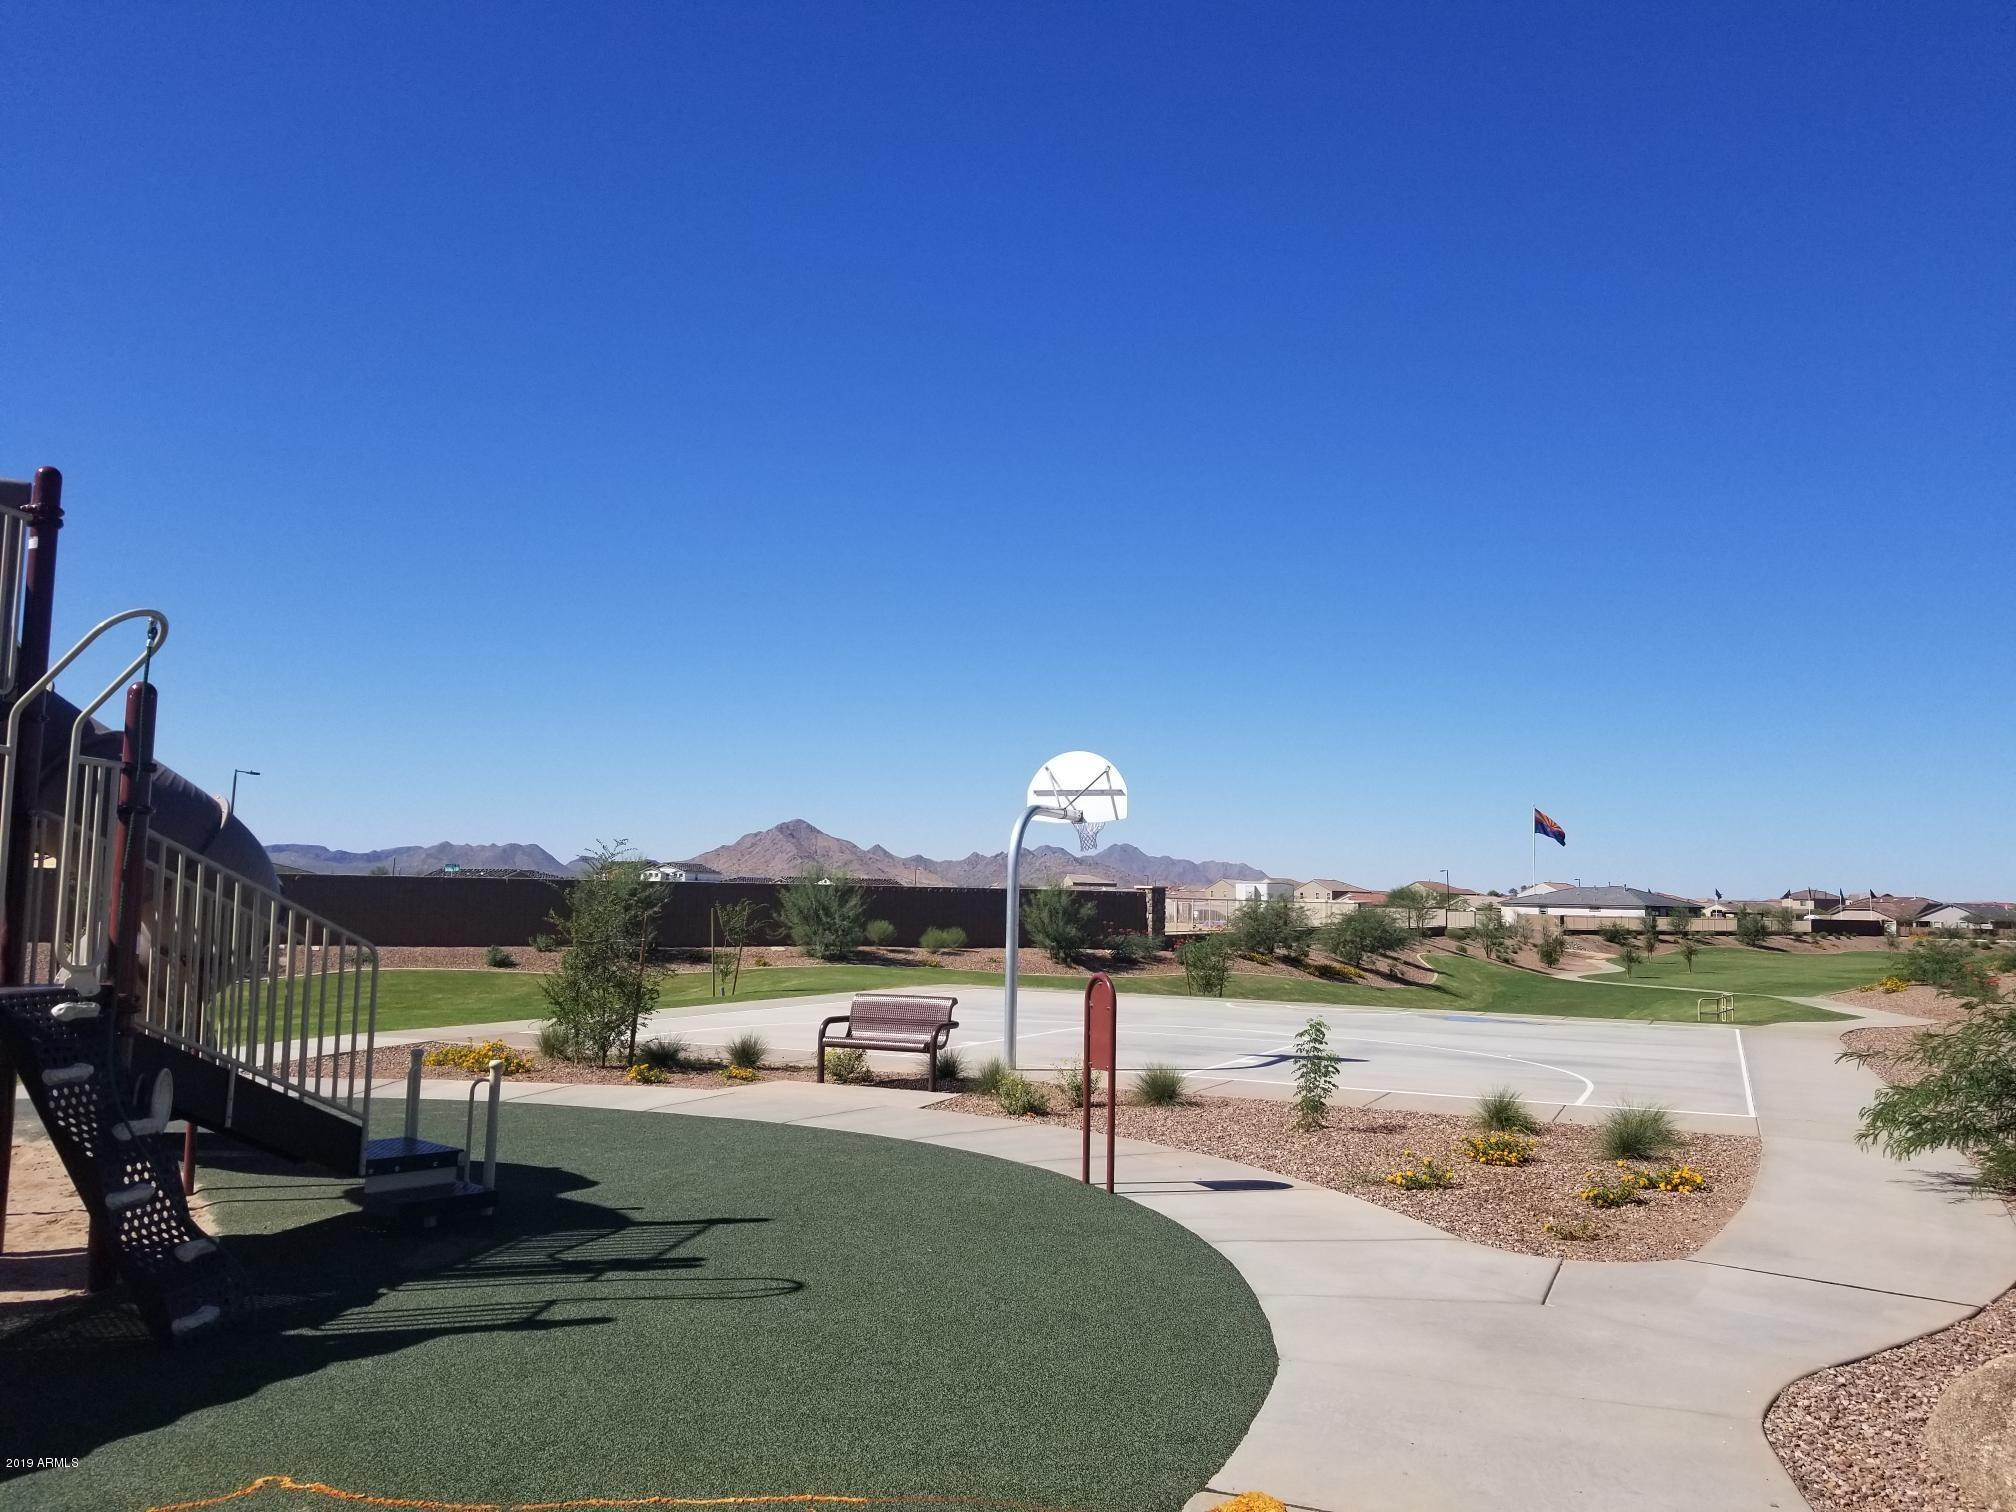 302 W Mammoth Cave Drive, San Tan Valley, Arizona 85140, 3 Bedrooms Bedrooms, ,Residential,For Sale,302 W Mammoth Cave Drive,6008598